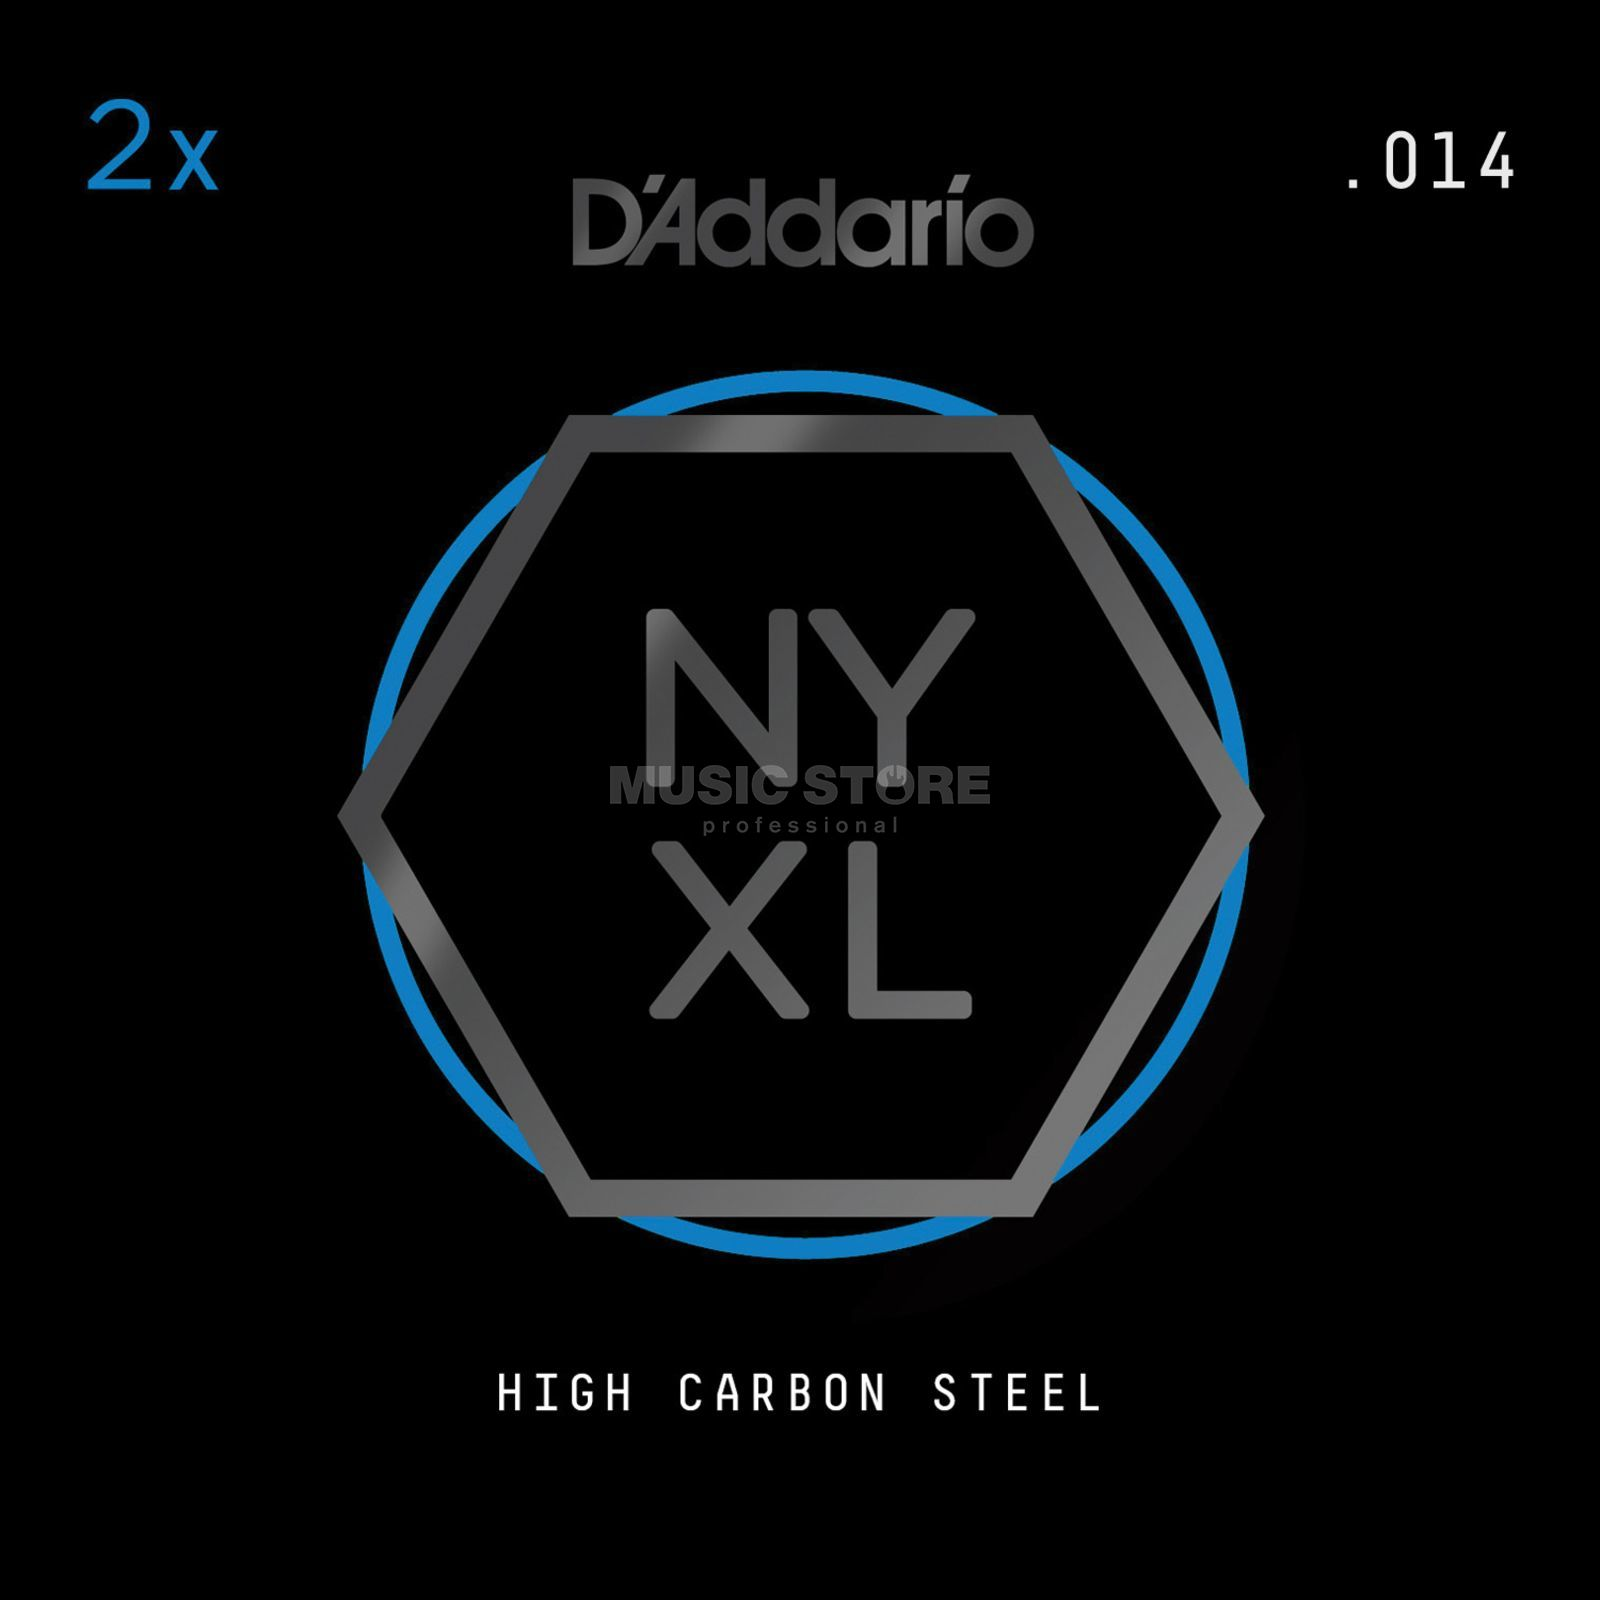 D'Addario NYPL014 Plain Single String 2-Pack - High Carbon Steel Imagem do produto